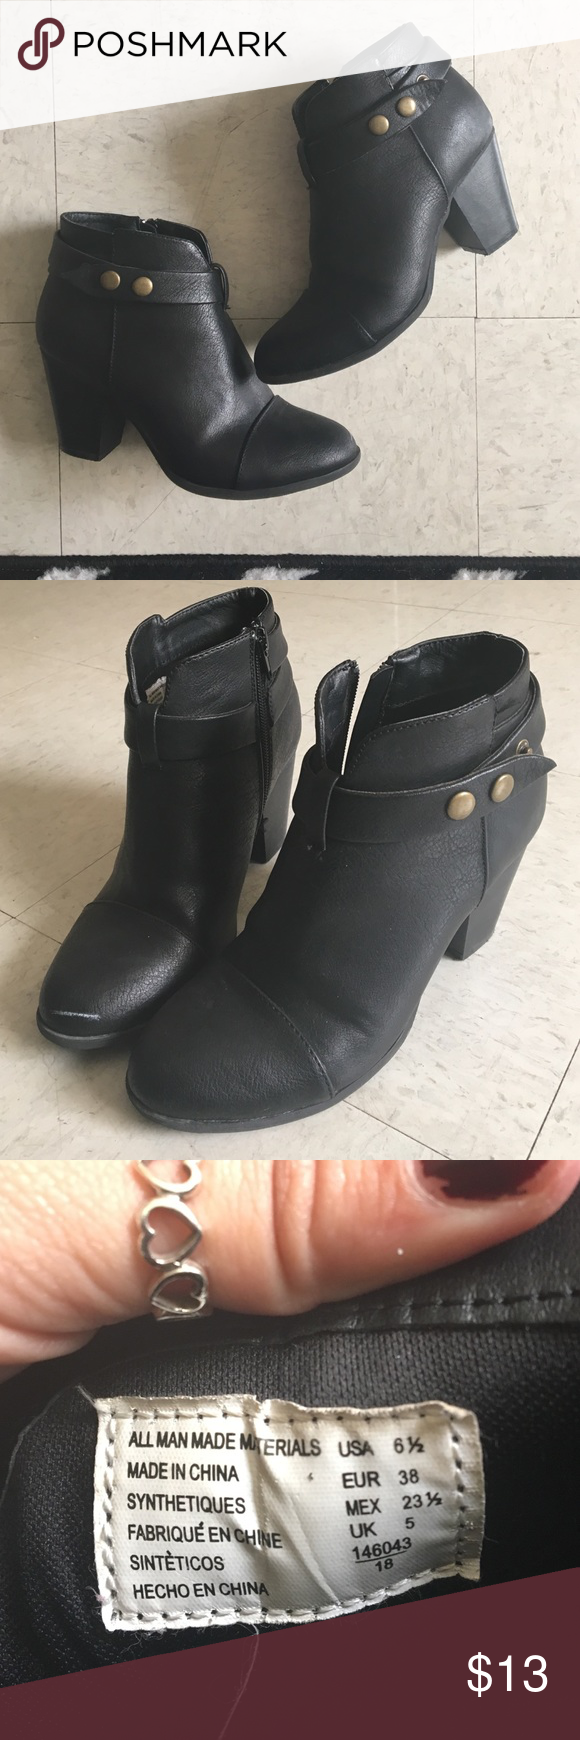 Black Ankle Boots Great for casual or dressy-casual attire! Has a couple of scuffs/marks. Good condition. Worn only 5-10 times. Shoes Ankle Boots & Booties